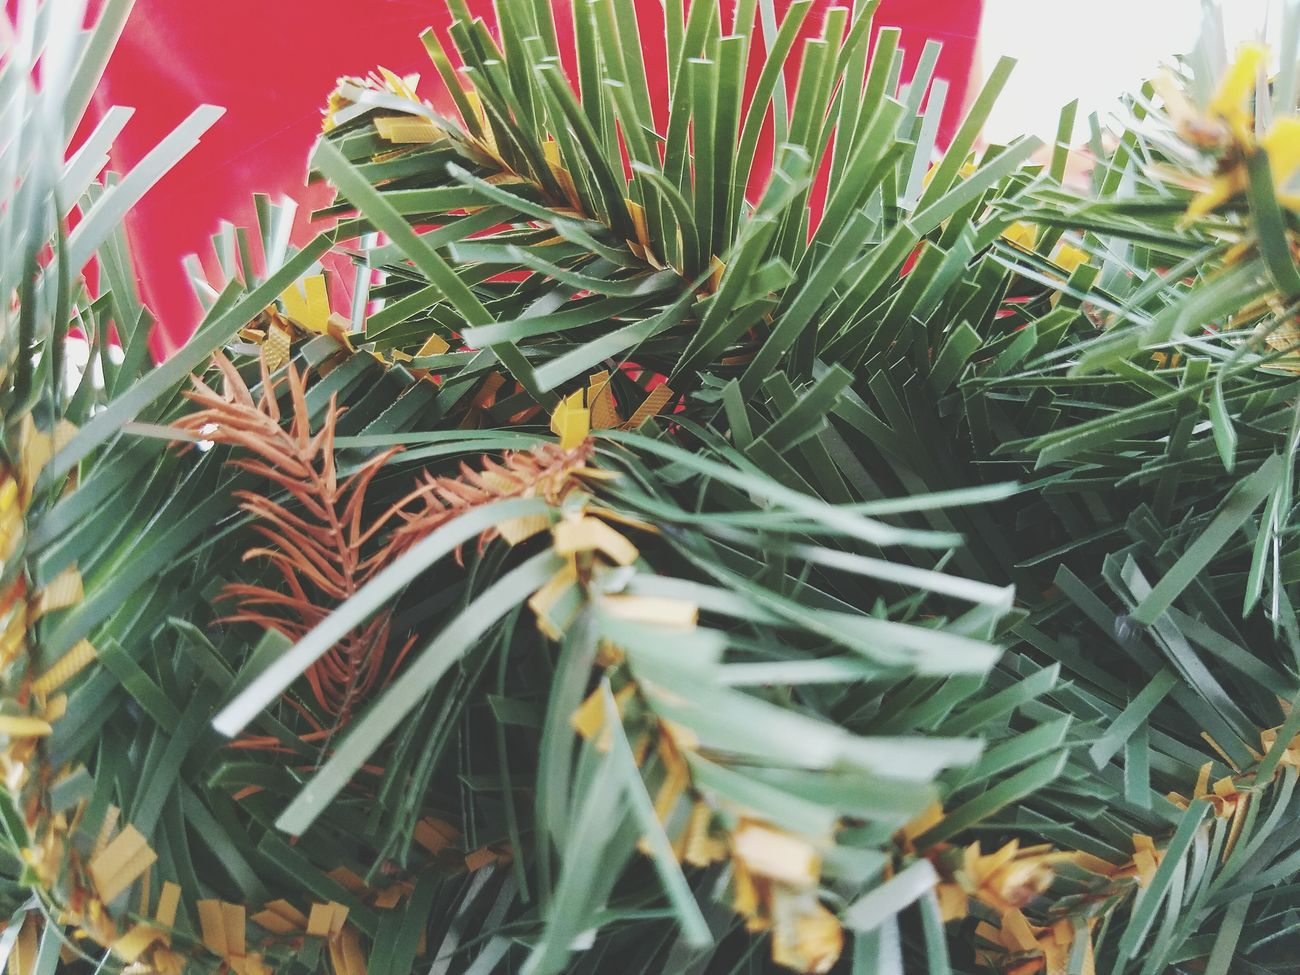 Beauty In Nature No People Growth Nature Plant Leaf Day Outdoors Close-up Needle - Plant Part Pine Cone Freshness Tranquility Unique Perspectives Green Color Green Leaves Green Plant Green Leaf Greenary Red Red Color Red Background Nature Photography